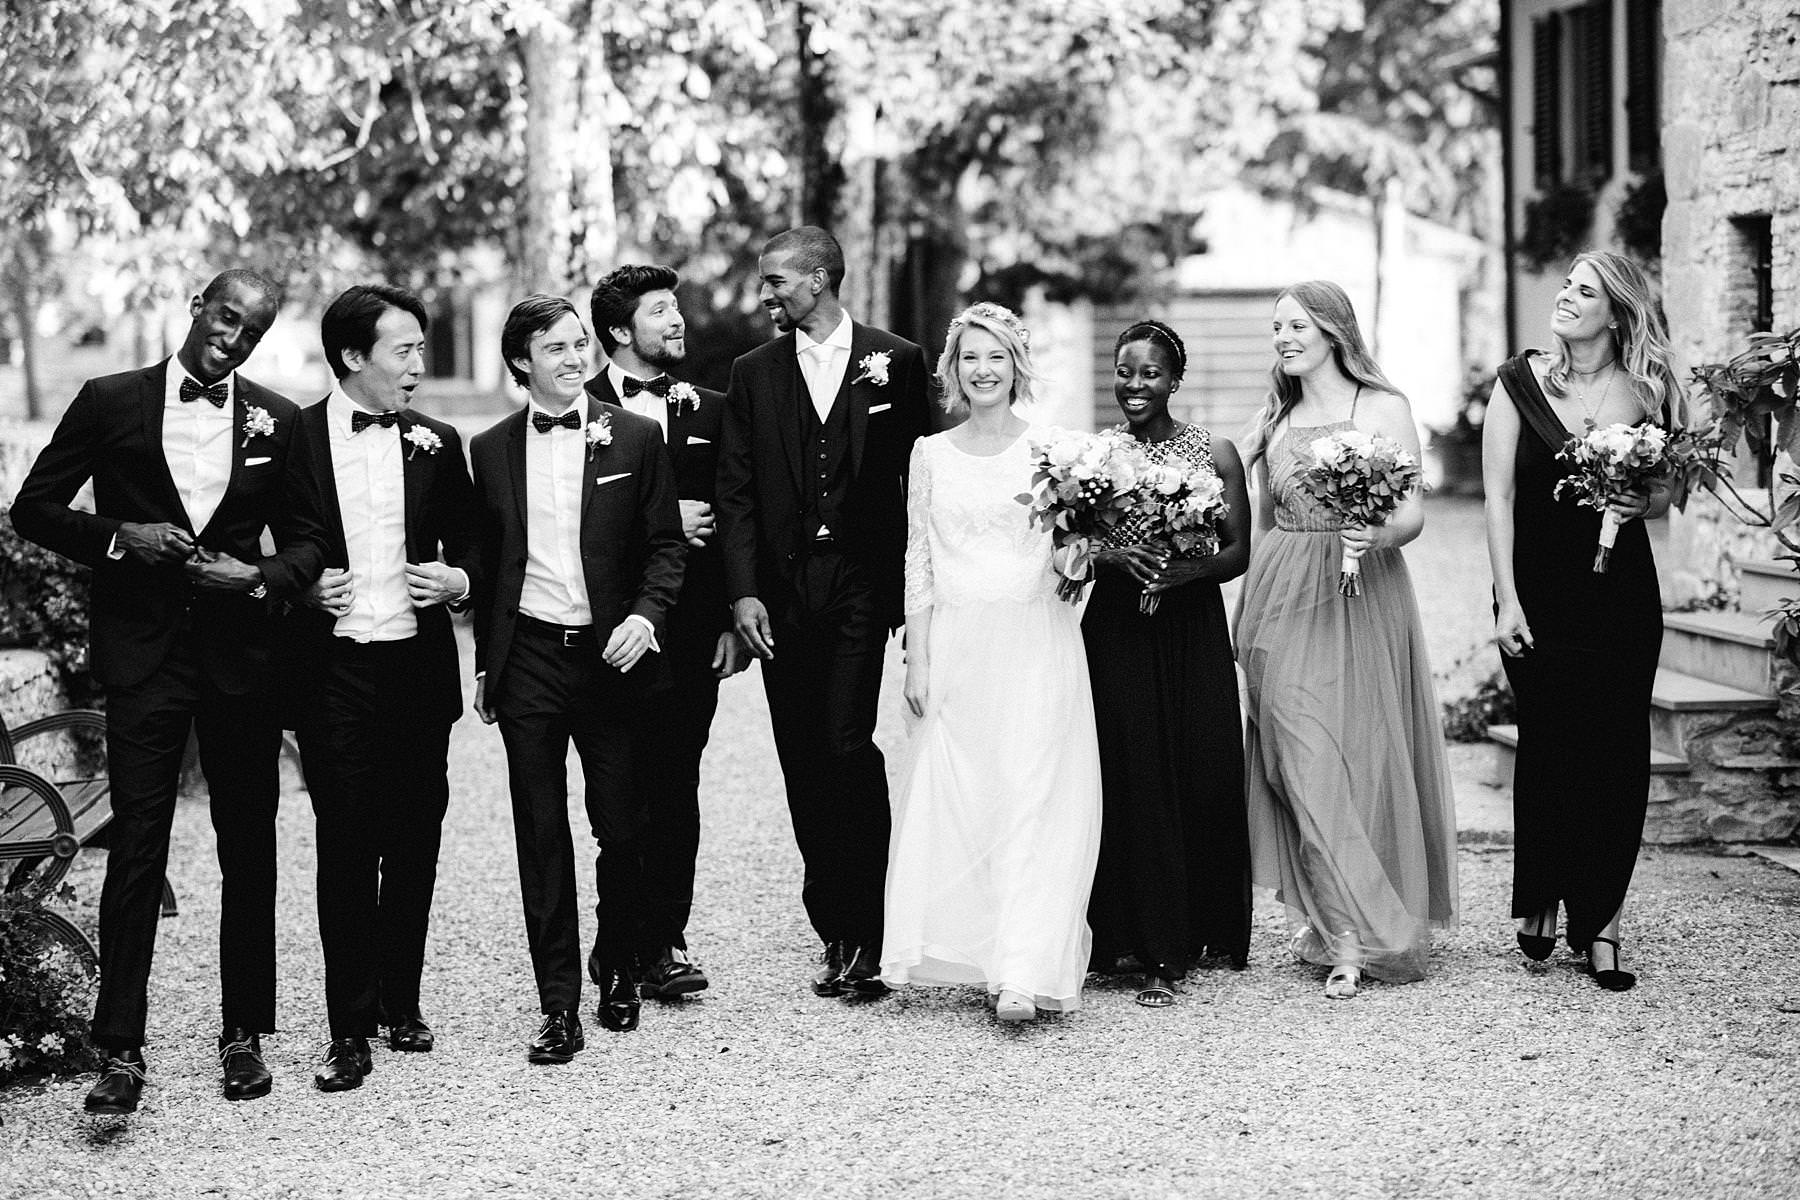 Wedding party lovely group shoot at Montelucci Country Resort destination wedding in Tuscany